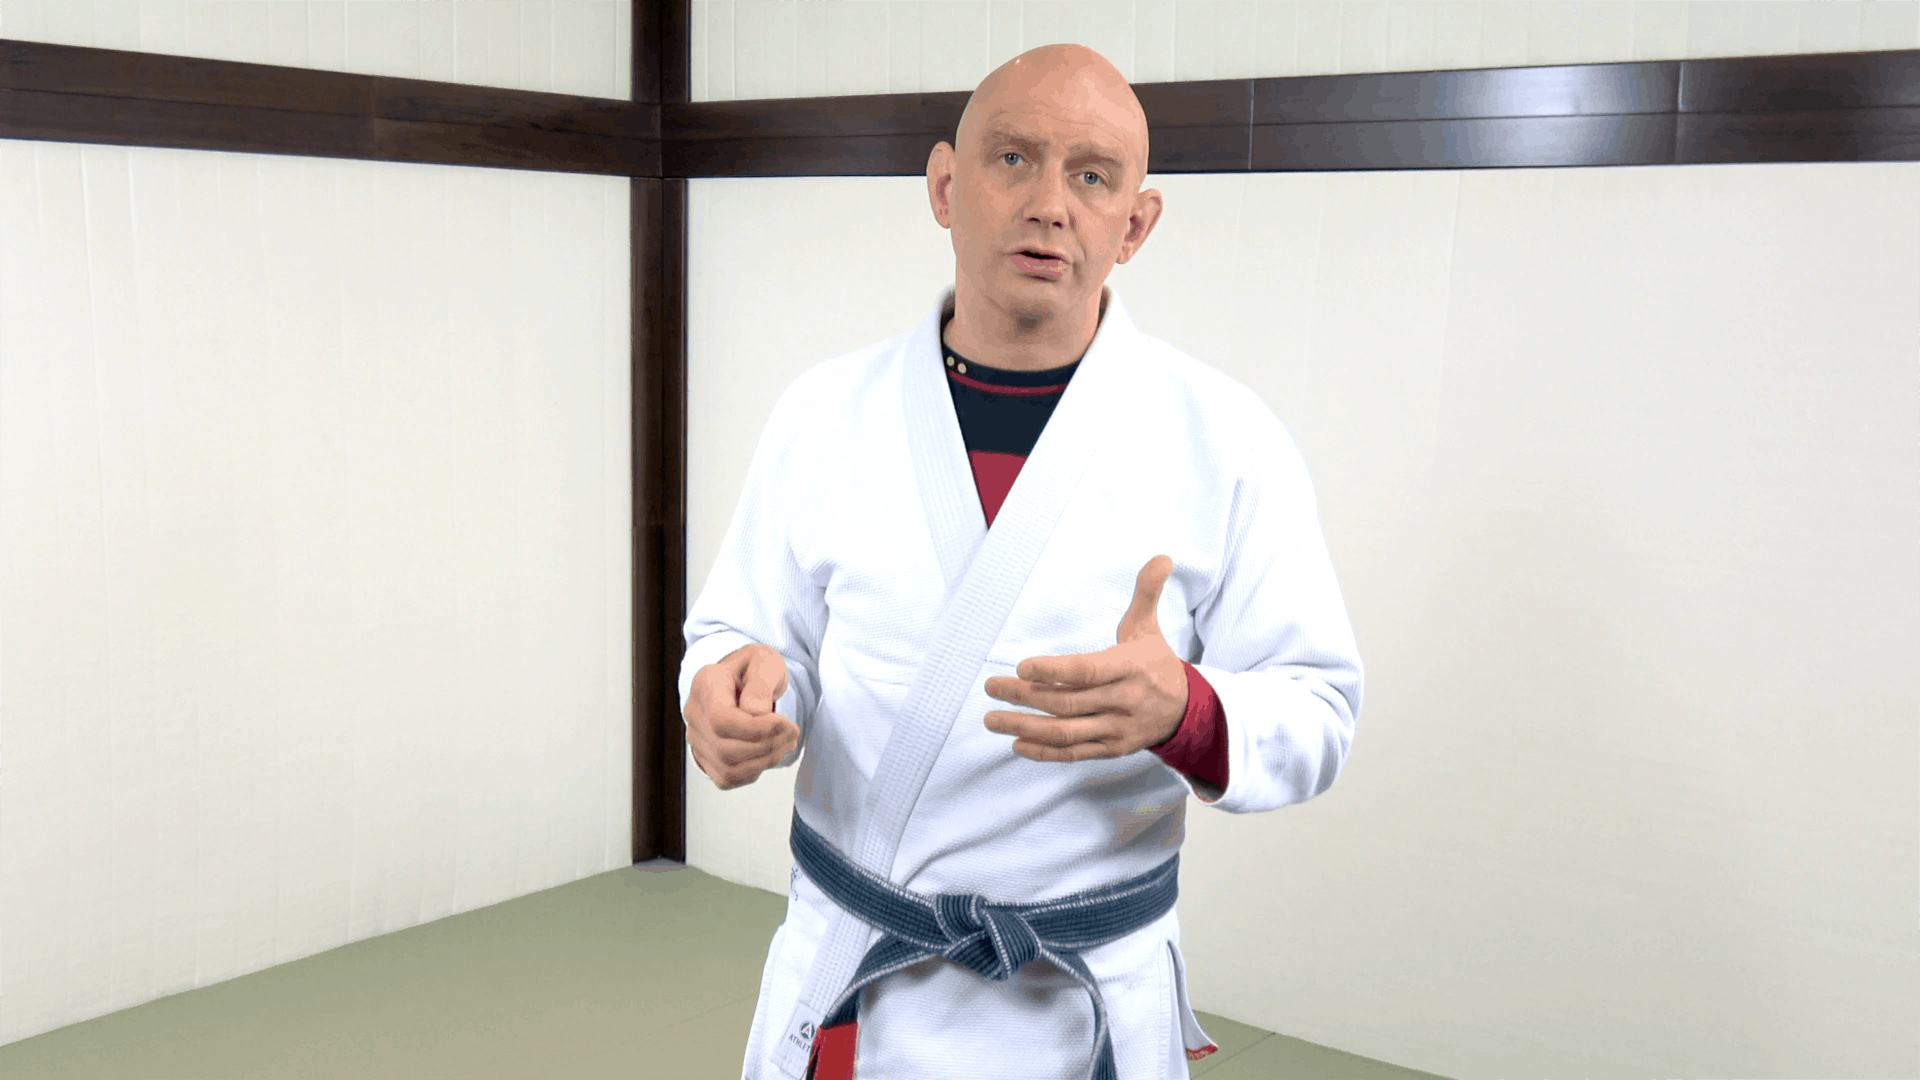 Best Advice From 12 BJJ Black Belts for Beginners by Stephan Kesting